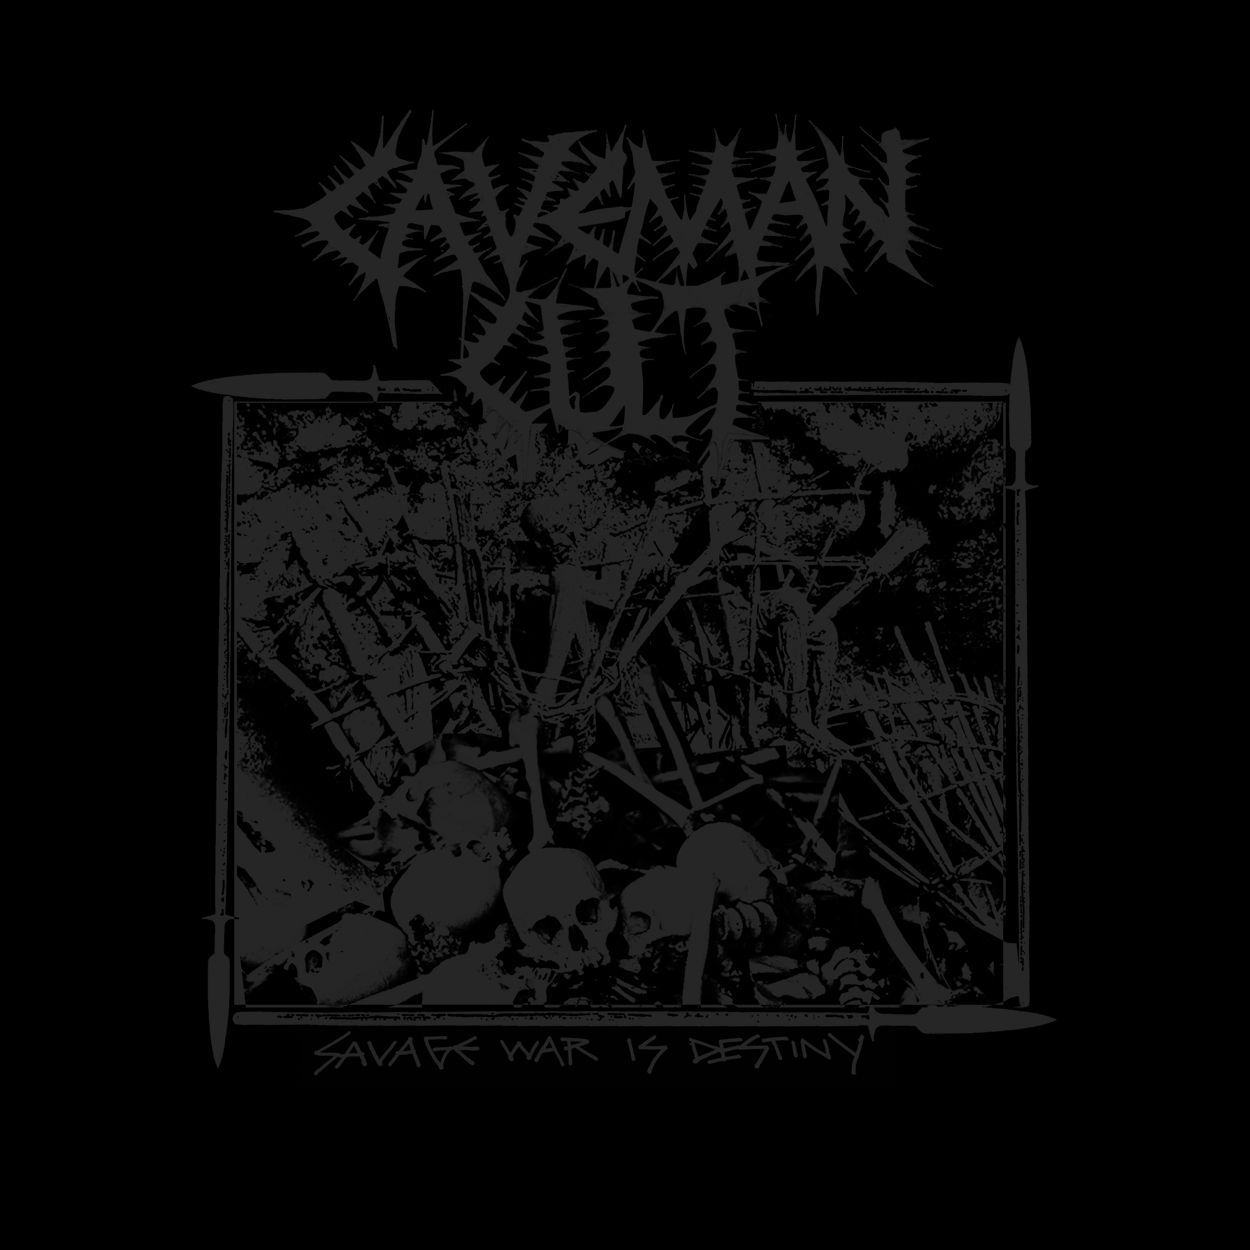 "CAVEMAN CULT ""Savage War Is Destiny"" CD 9.99"